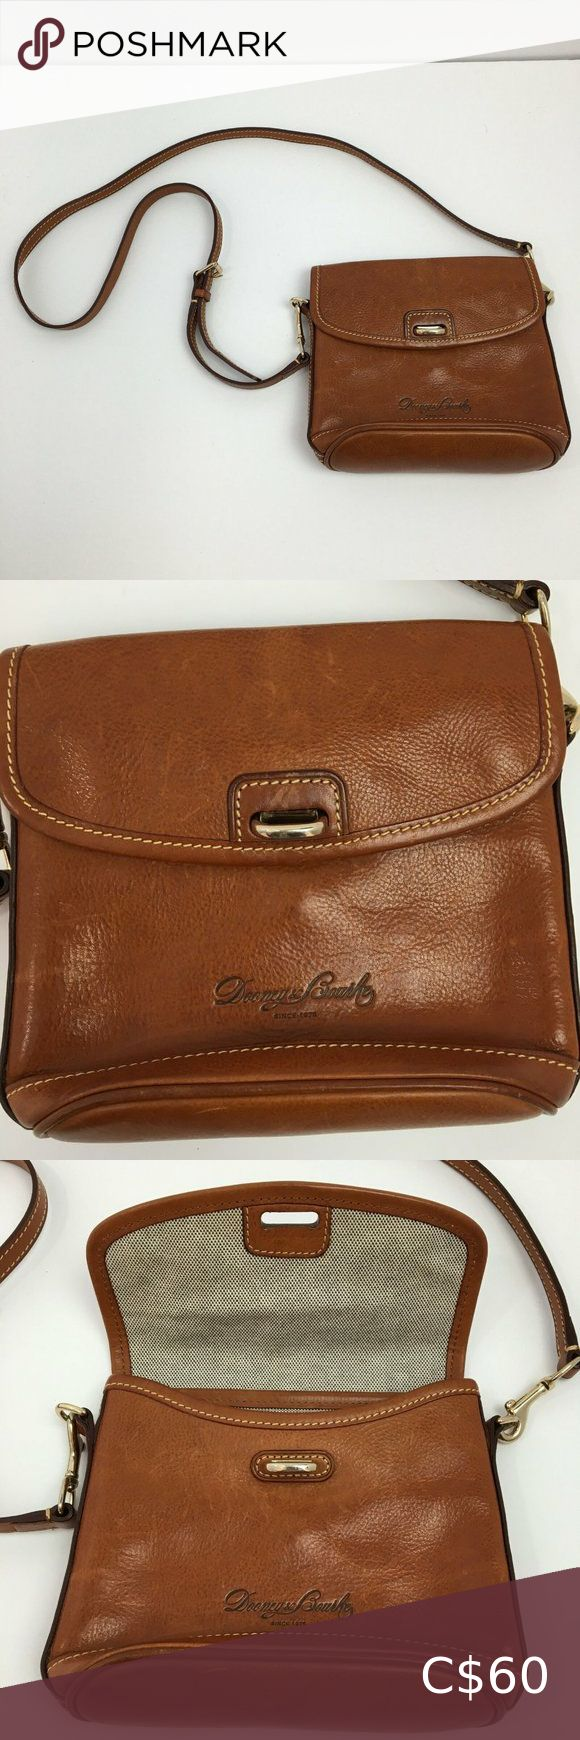 Dooney & Bourke Leather Crossbody Sling Bag Women's Dooney & Bourke 1975 Genuine Leather Crossbody Sling Purse Tote Bag. Features a detachable strap, and 2 inner compartments/pockets! Color Brown. Nice condition. Strap missing on back, appears to have been cut. See photos for full details.  Measurements:  Overall Length: 7.5